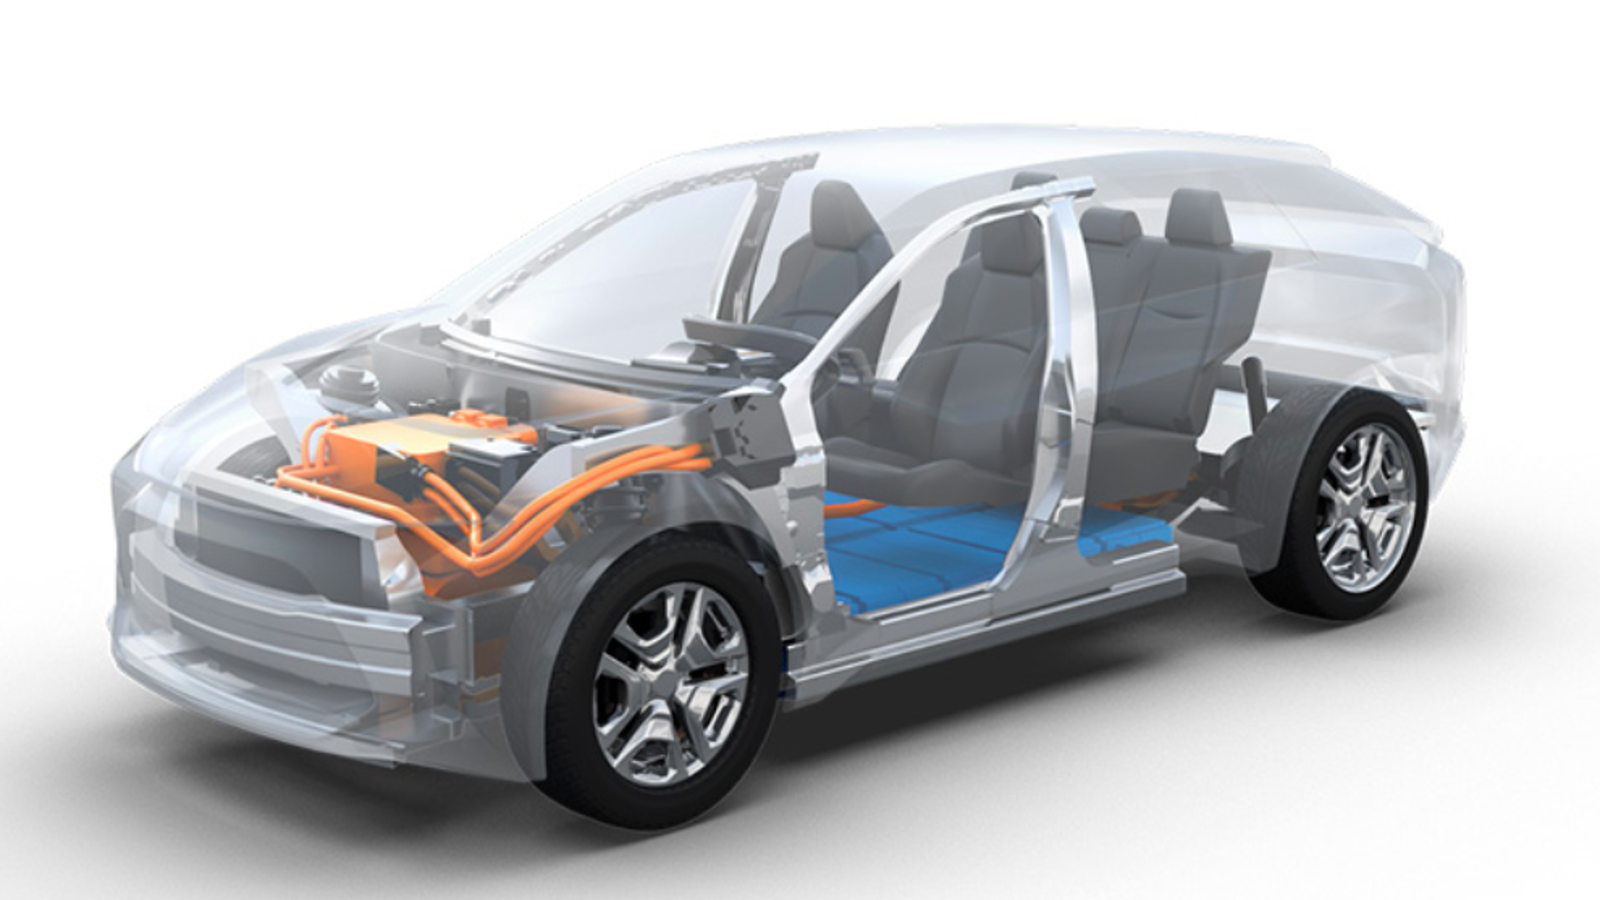 Here U0026 39 S A First Look At Toyota And Subaru U0026 39 S Electric Car